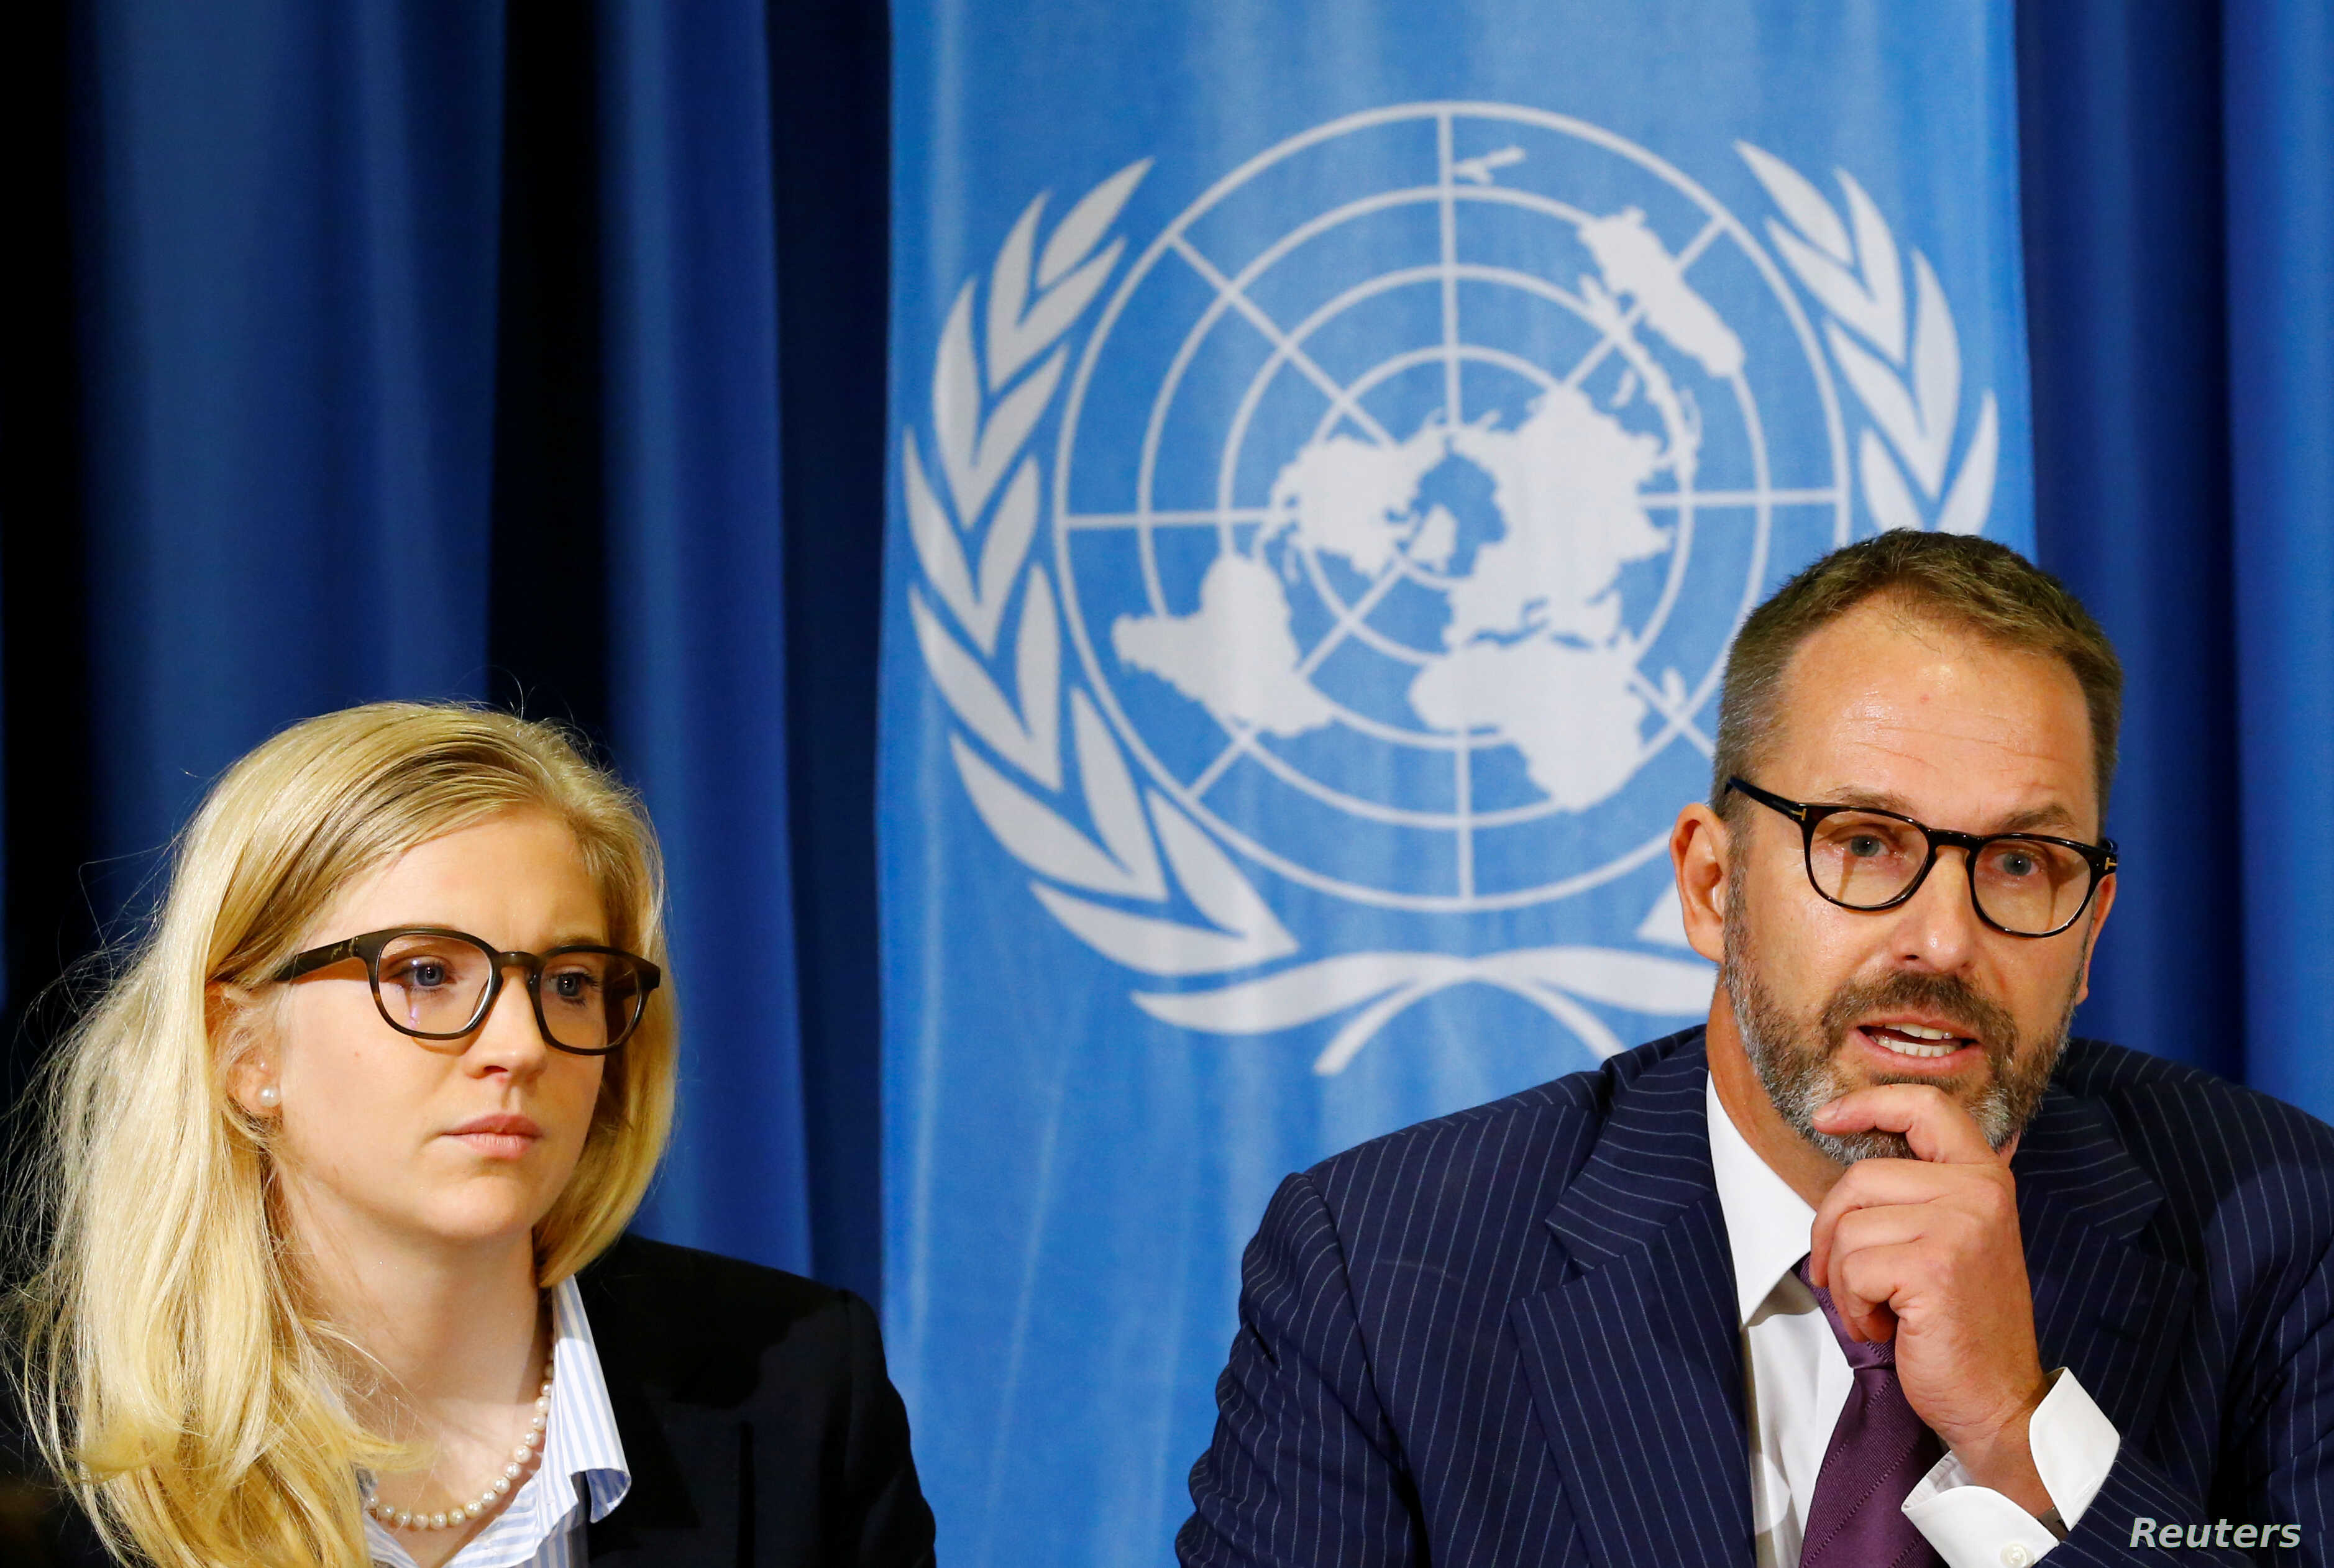 (L-R) Karin Friedrich and Thomas Hunecke attend a news conference on the Mission Report of the Office of the High Commissioner for Human Rights (OHCHR) rapid response mission to Cox's Bazaar, Bangladesh, for the Rohingya crisis in Myanmar, at the Uni...